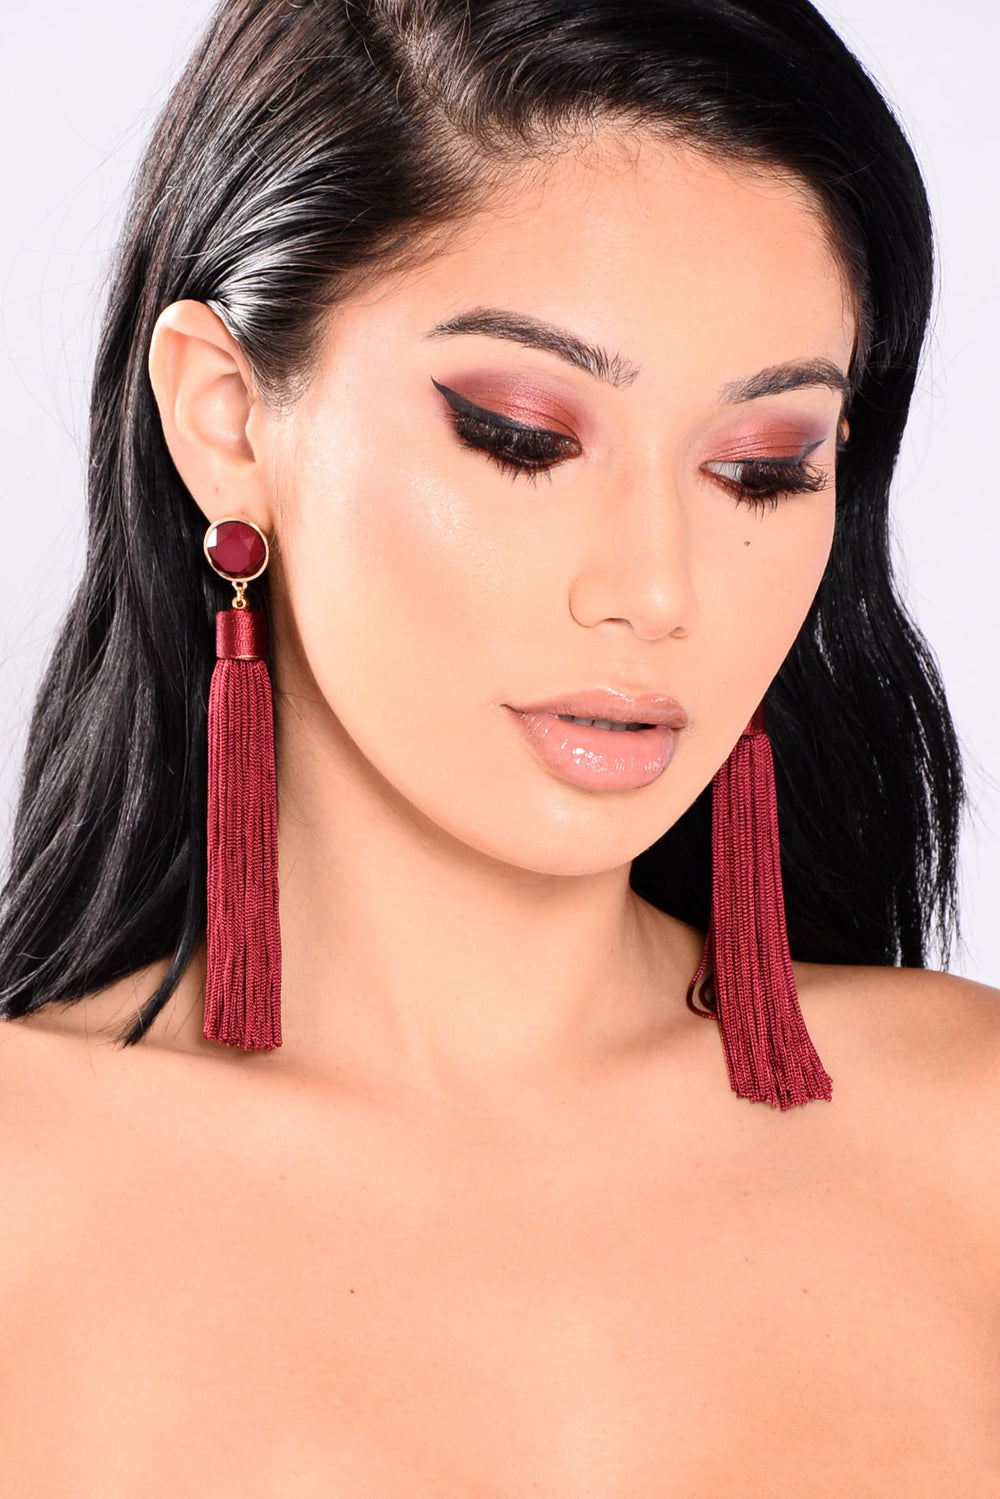 Tuscany Dreaming Tassle Earrings - Burgundy